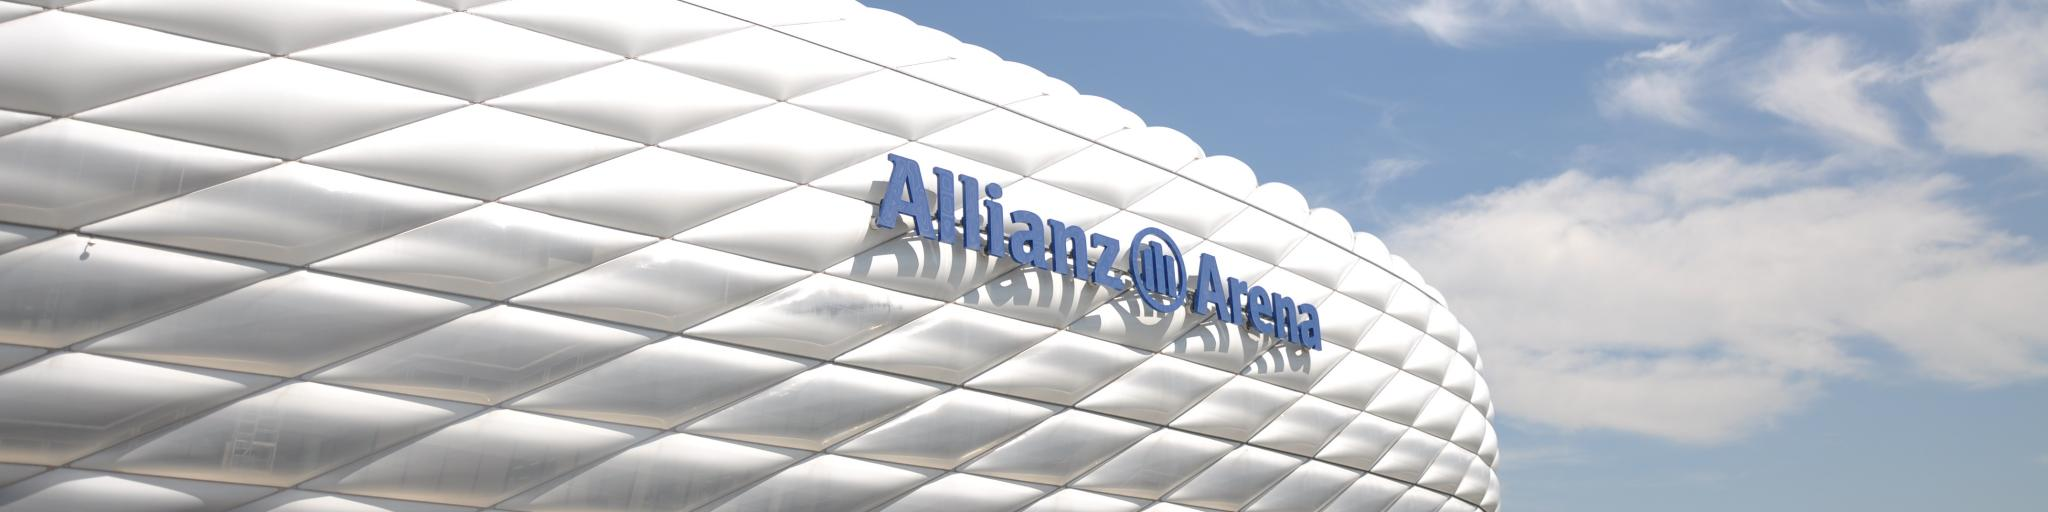 The bubbled, circular exterior of the Allianz Arena, Munich, on a sunny day